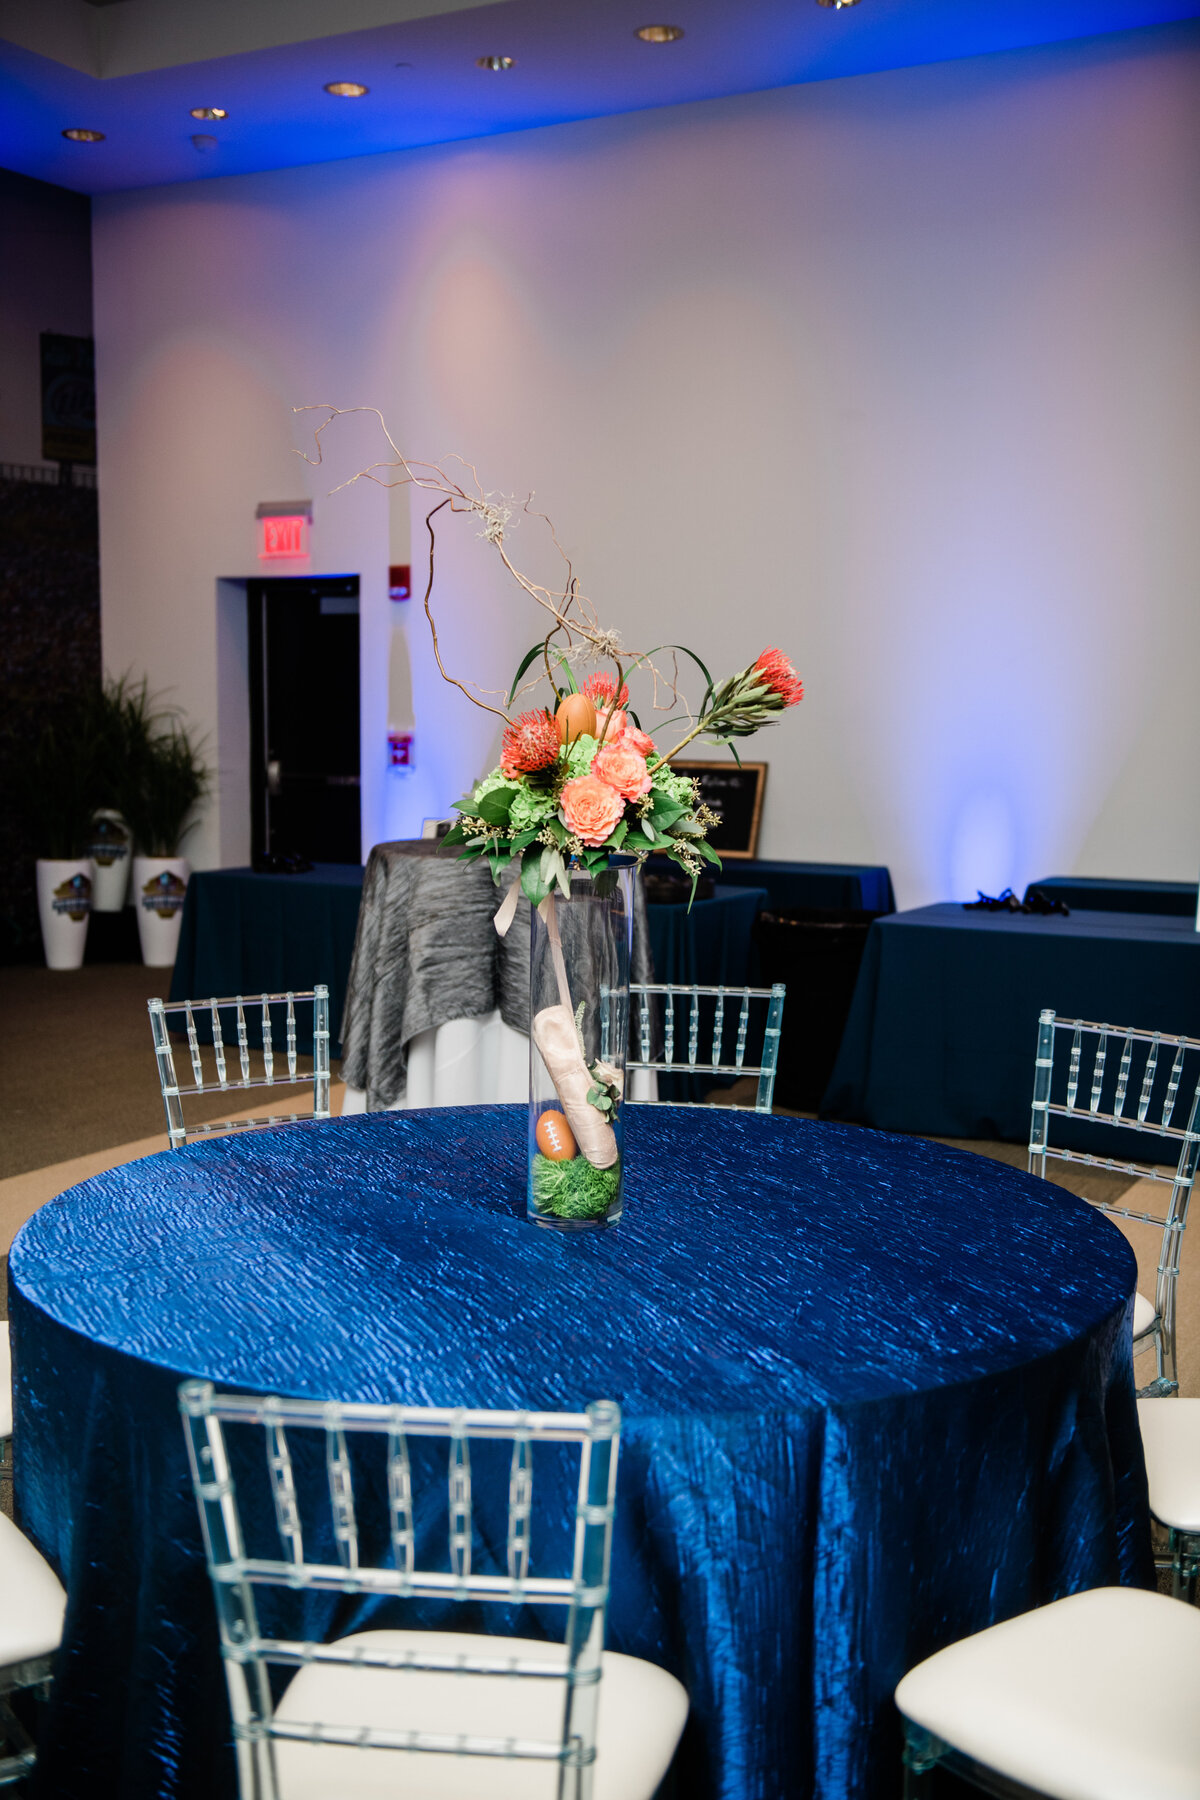 Enshrinement event design planned by Canton Ohio Event Planner